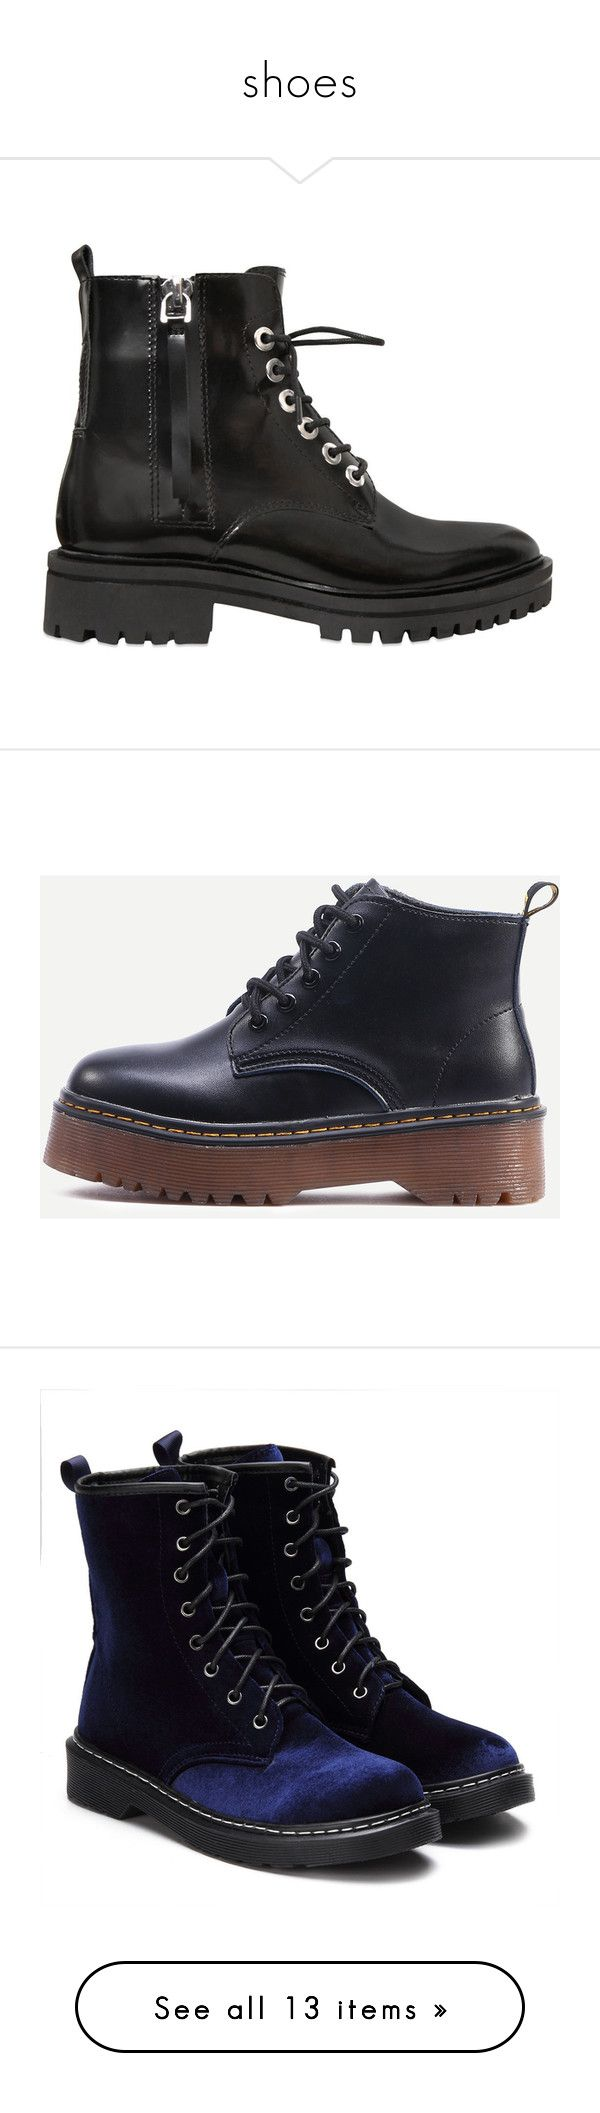 """""""shoes"""" by angela-grozdanov on Polyvore featuring shoes, boots, botas, shoes - boots, black, polishing boots, black rubber shoes, rubber shoes, black leather lace up boots and shiny black shoes"""